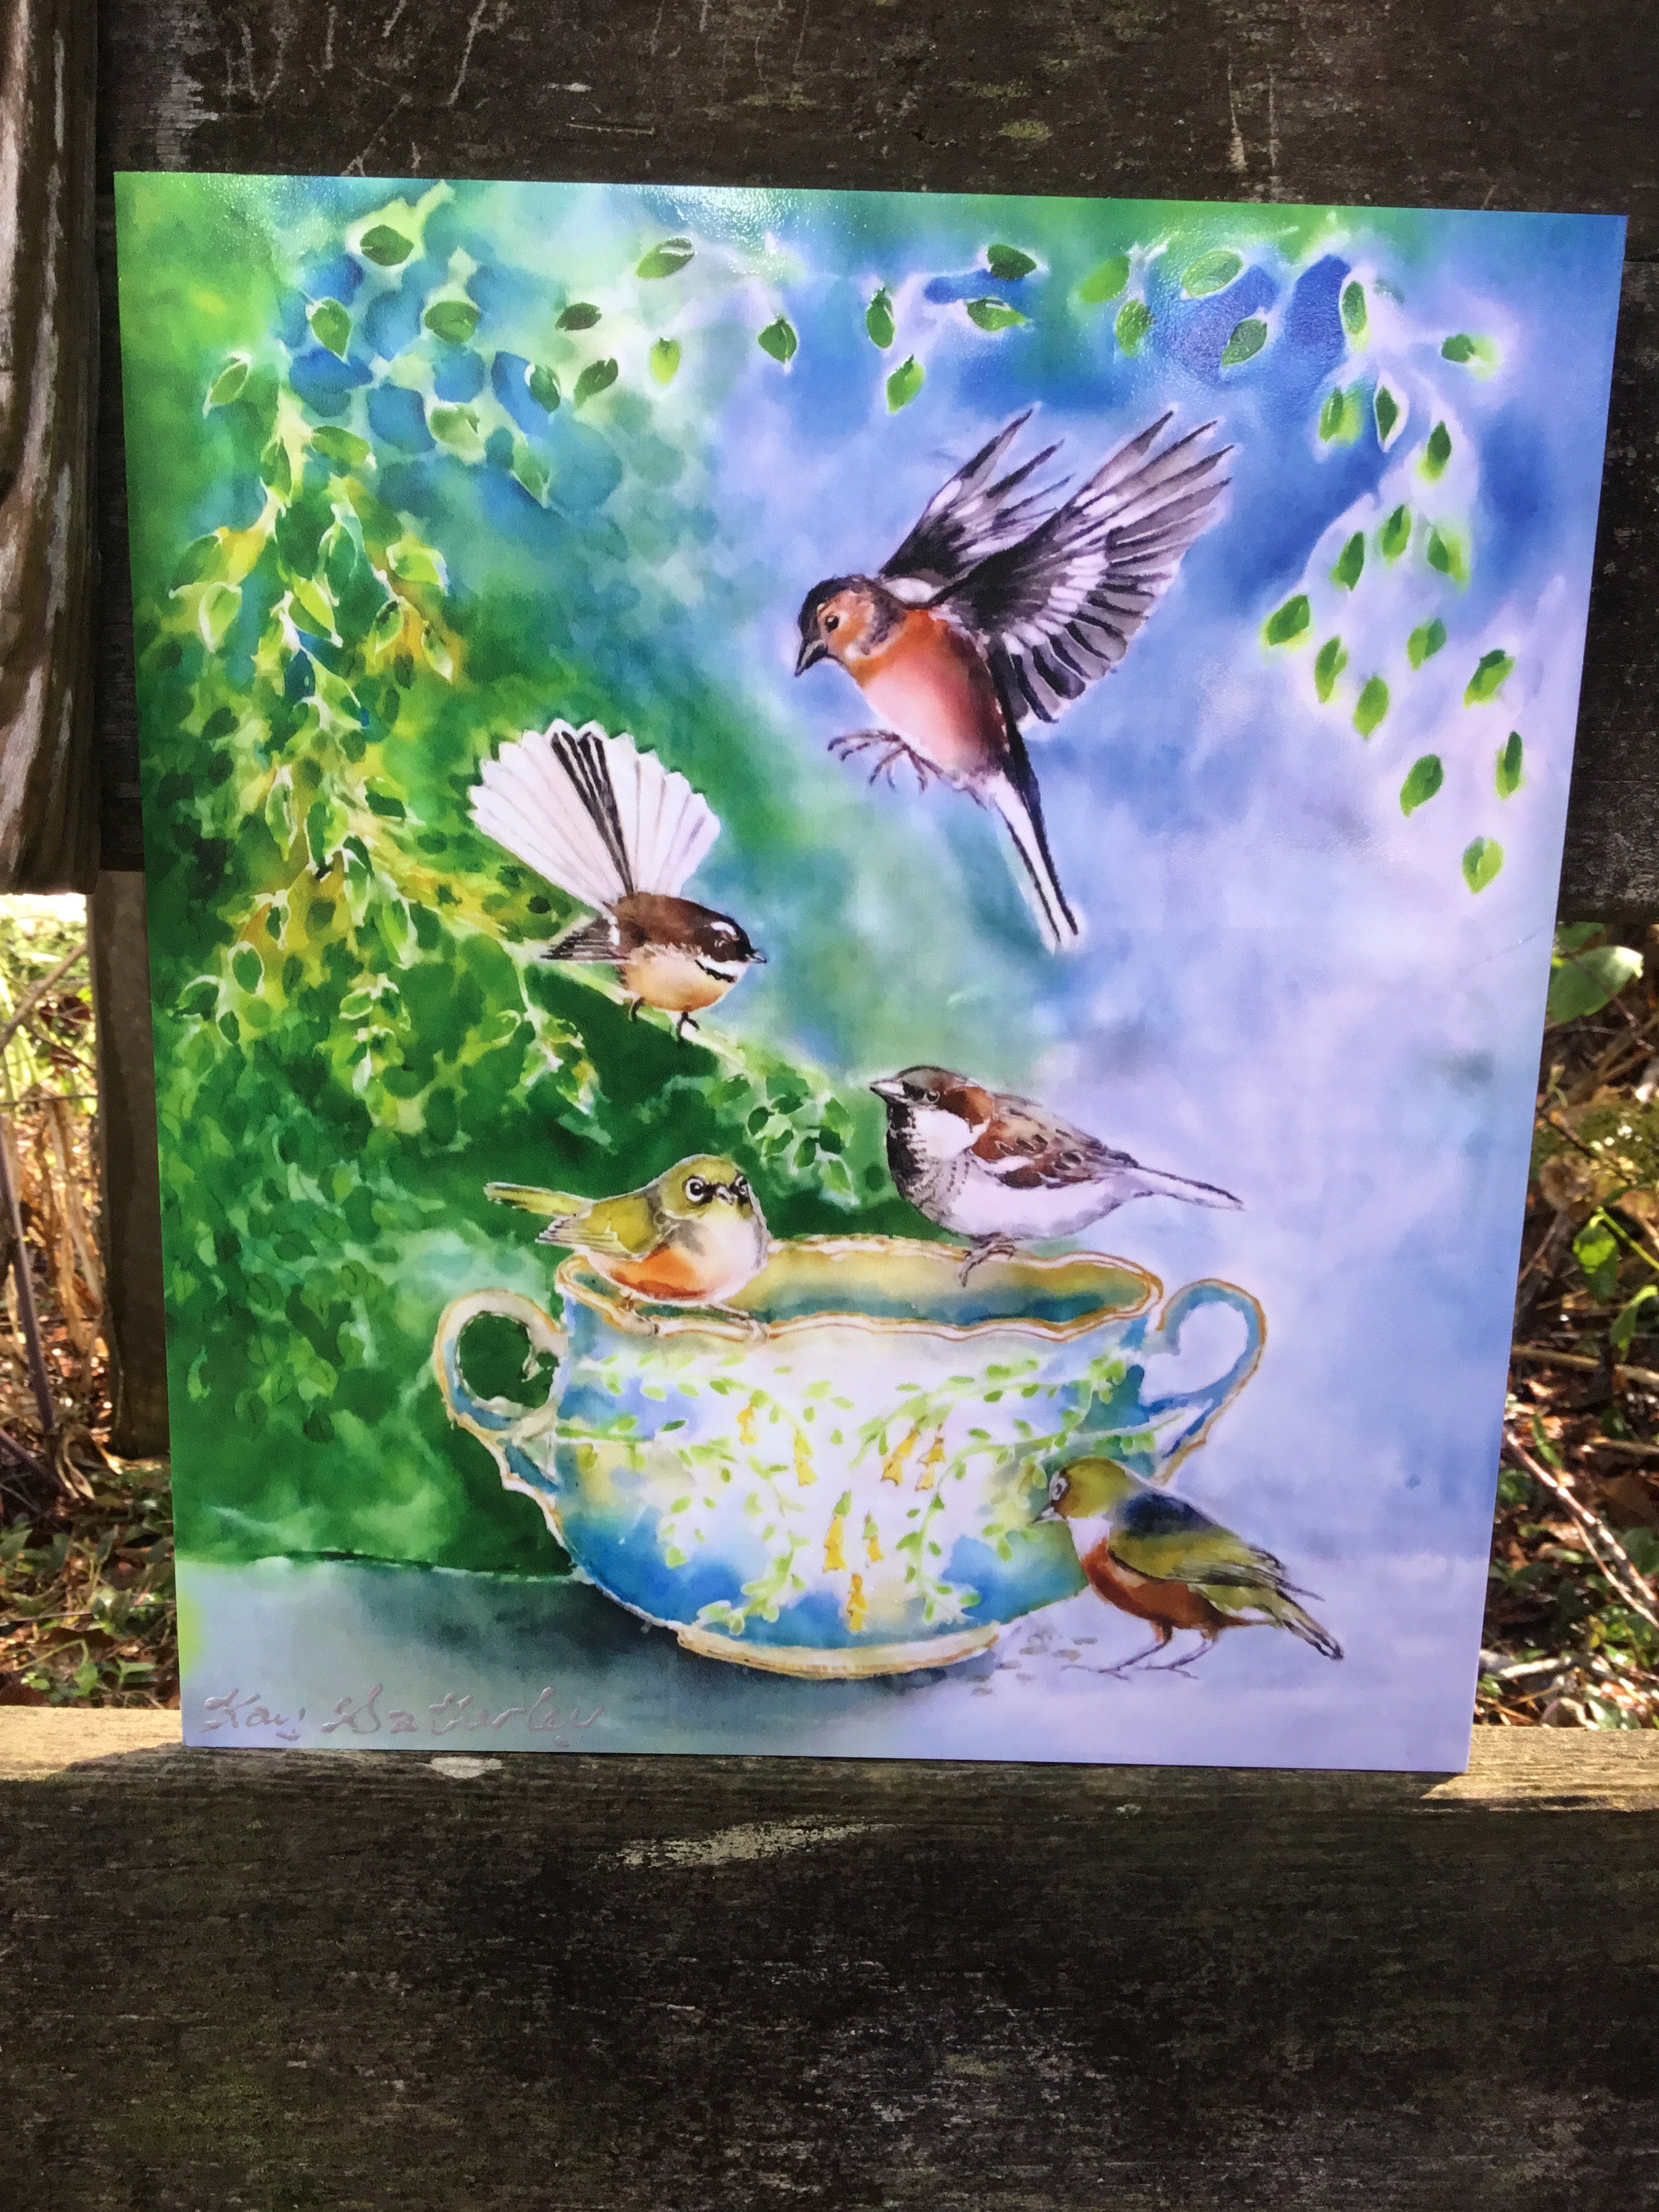 Small birds, SilverEyes, Chaffinch, Fantail and Sparrow on Vintage China - Outdoor Art 25 x 22cm